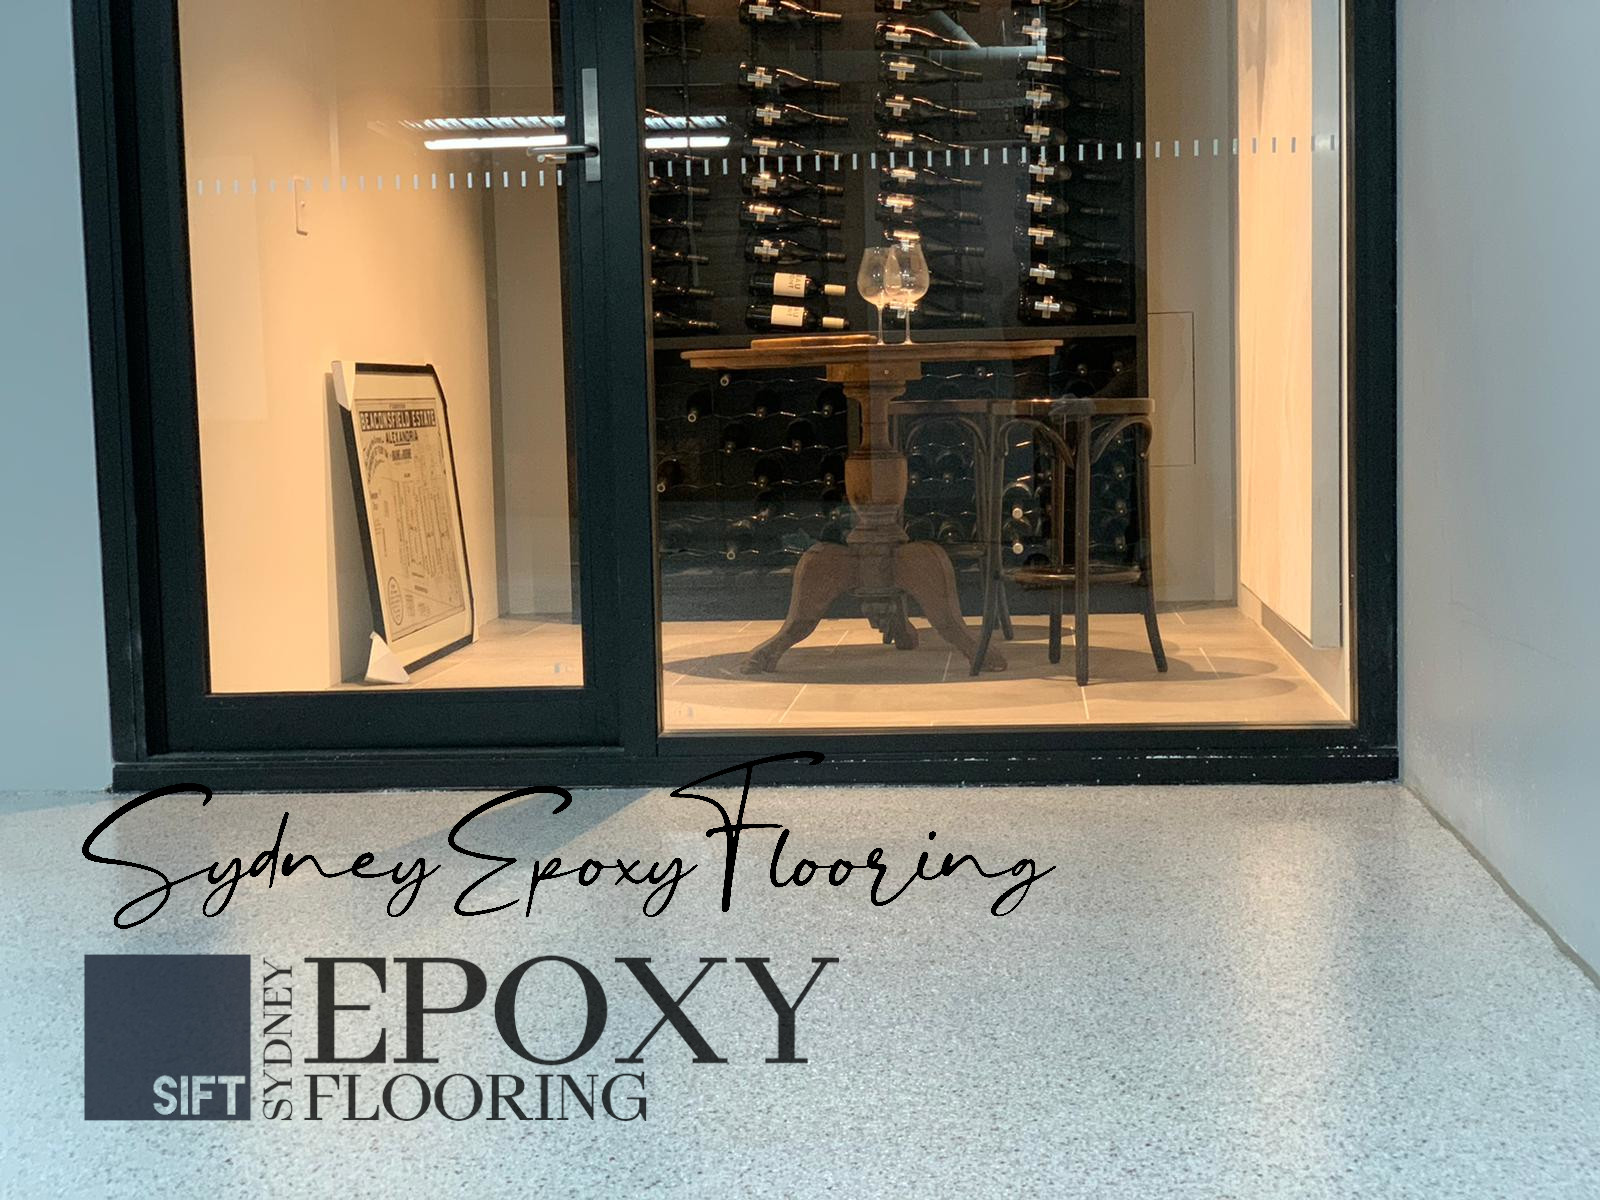 Is epoxy flooring good for homes?